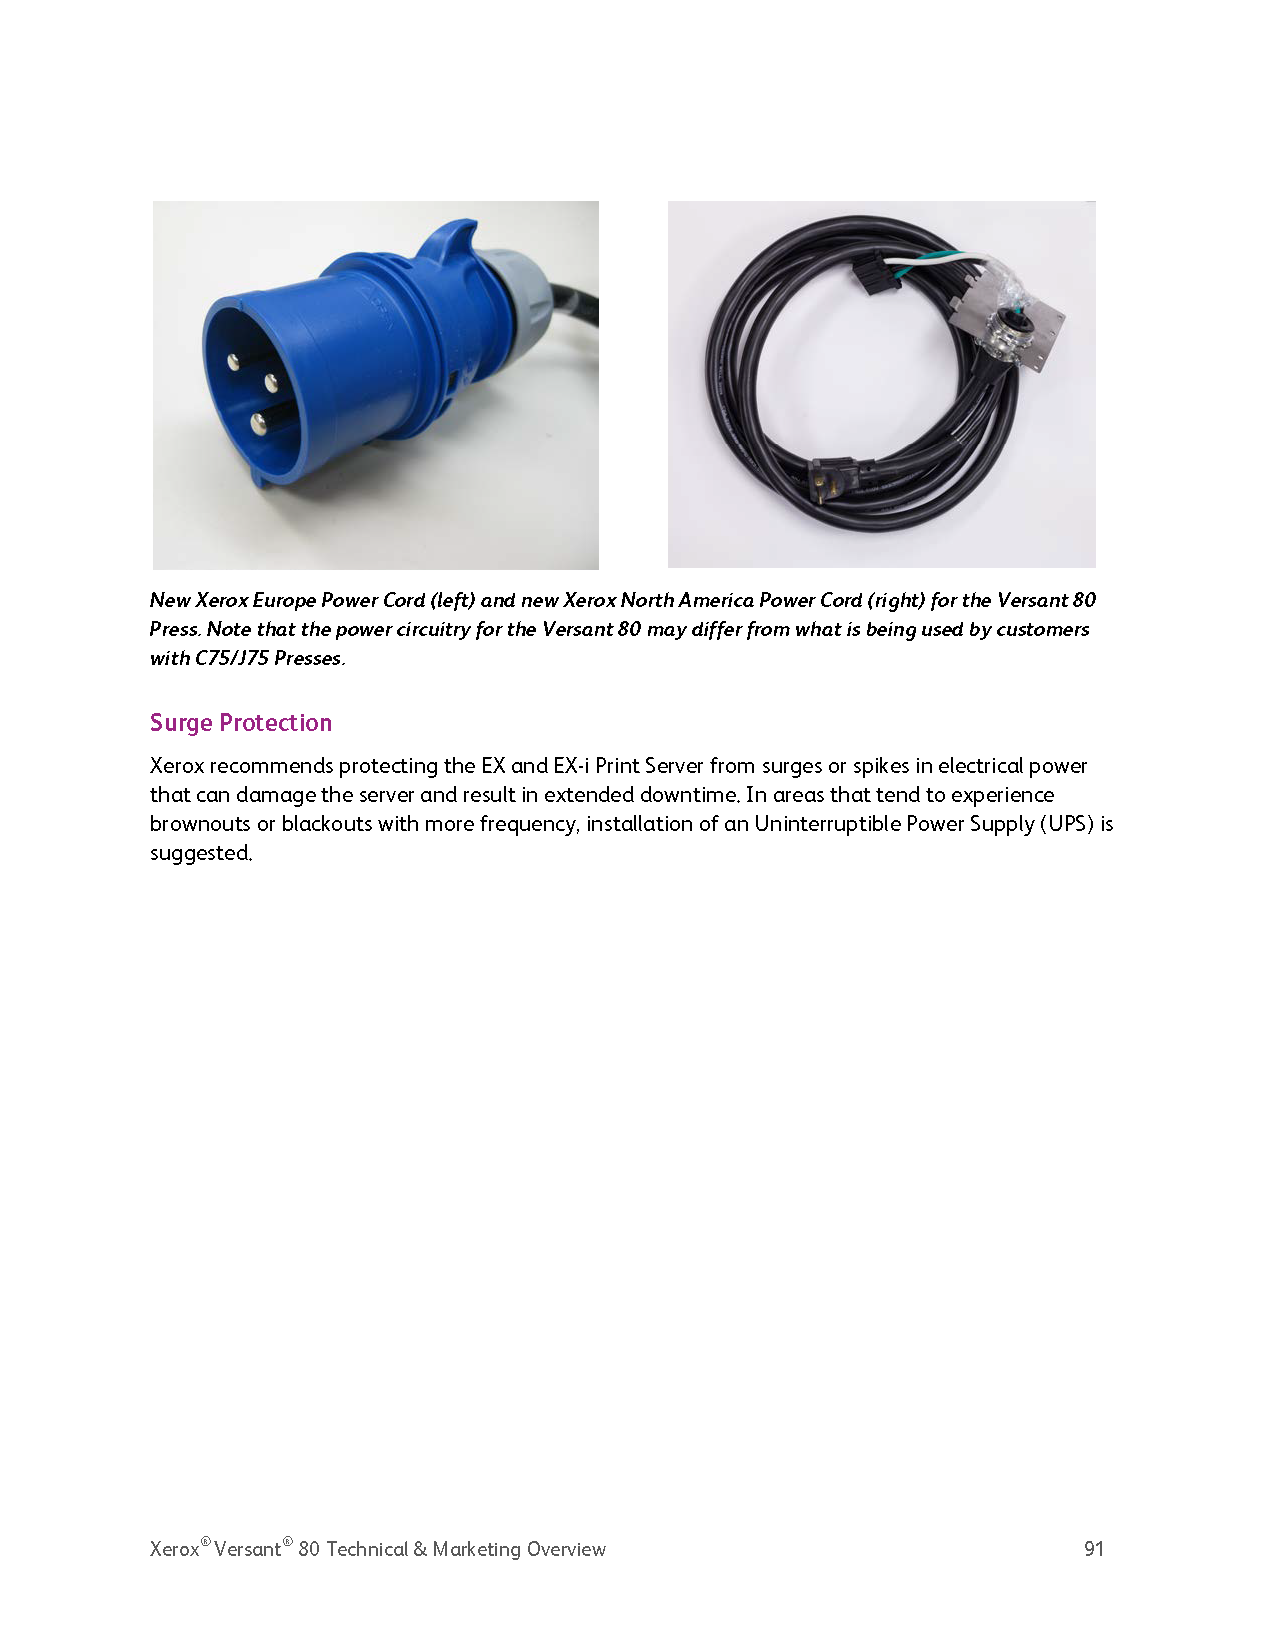 Versant 80 TMO Final_12.18.14.Optimized_Page_099.png